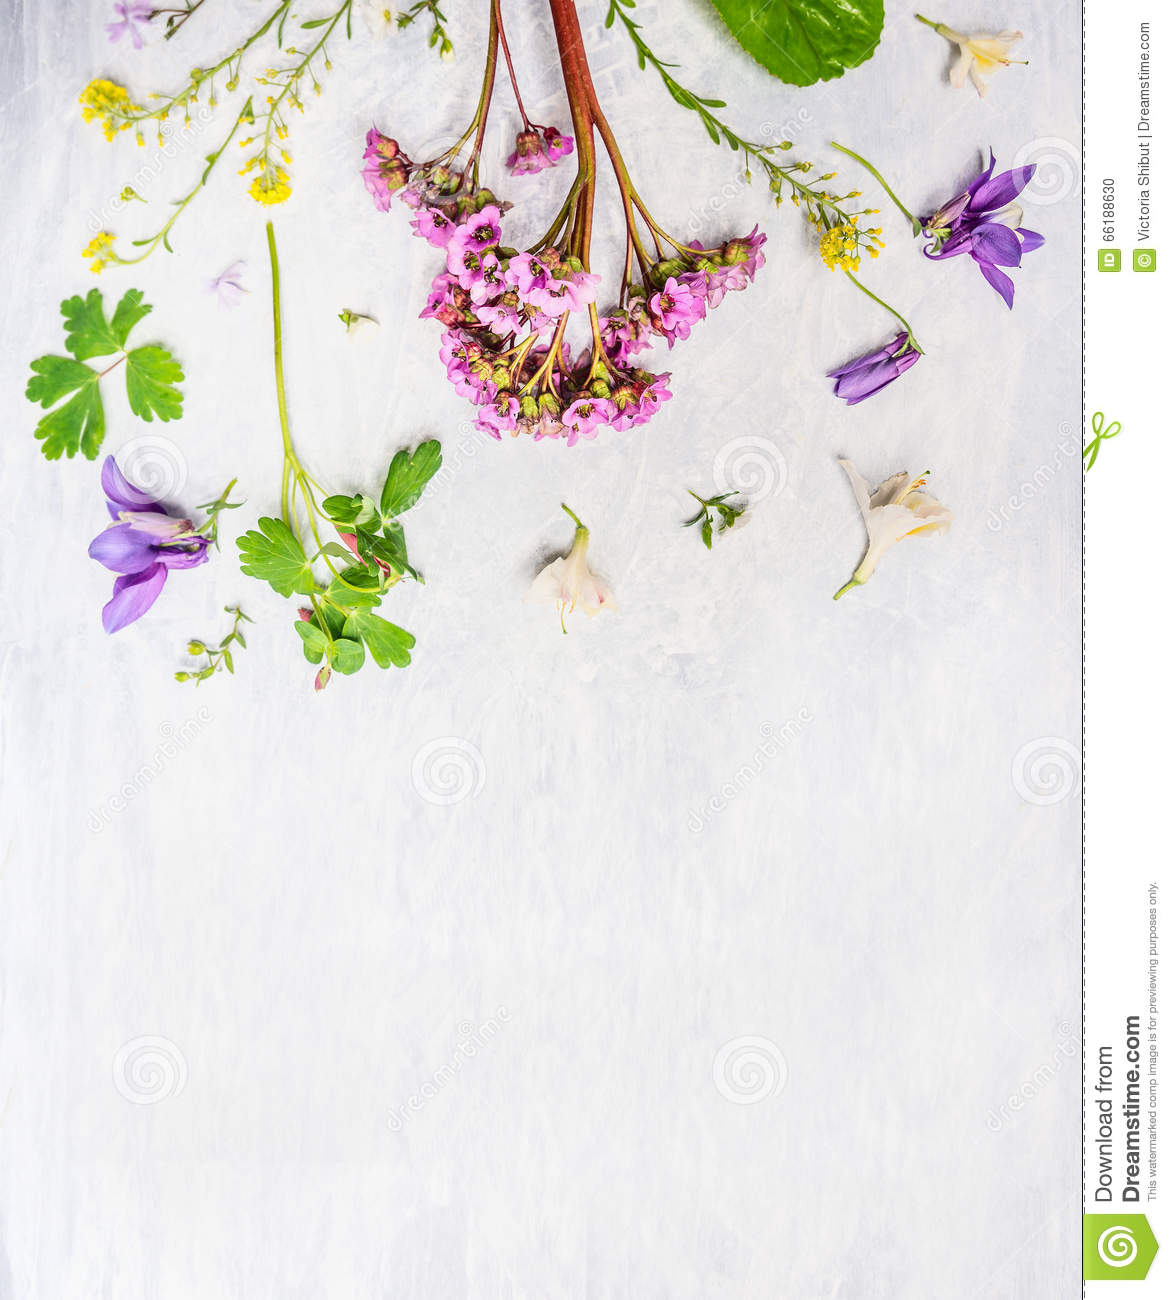 Plants for spring and summer - Pink Lilac And Yellow Spring Or Summer Garden Flowers And Plants On Light Wooden Background